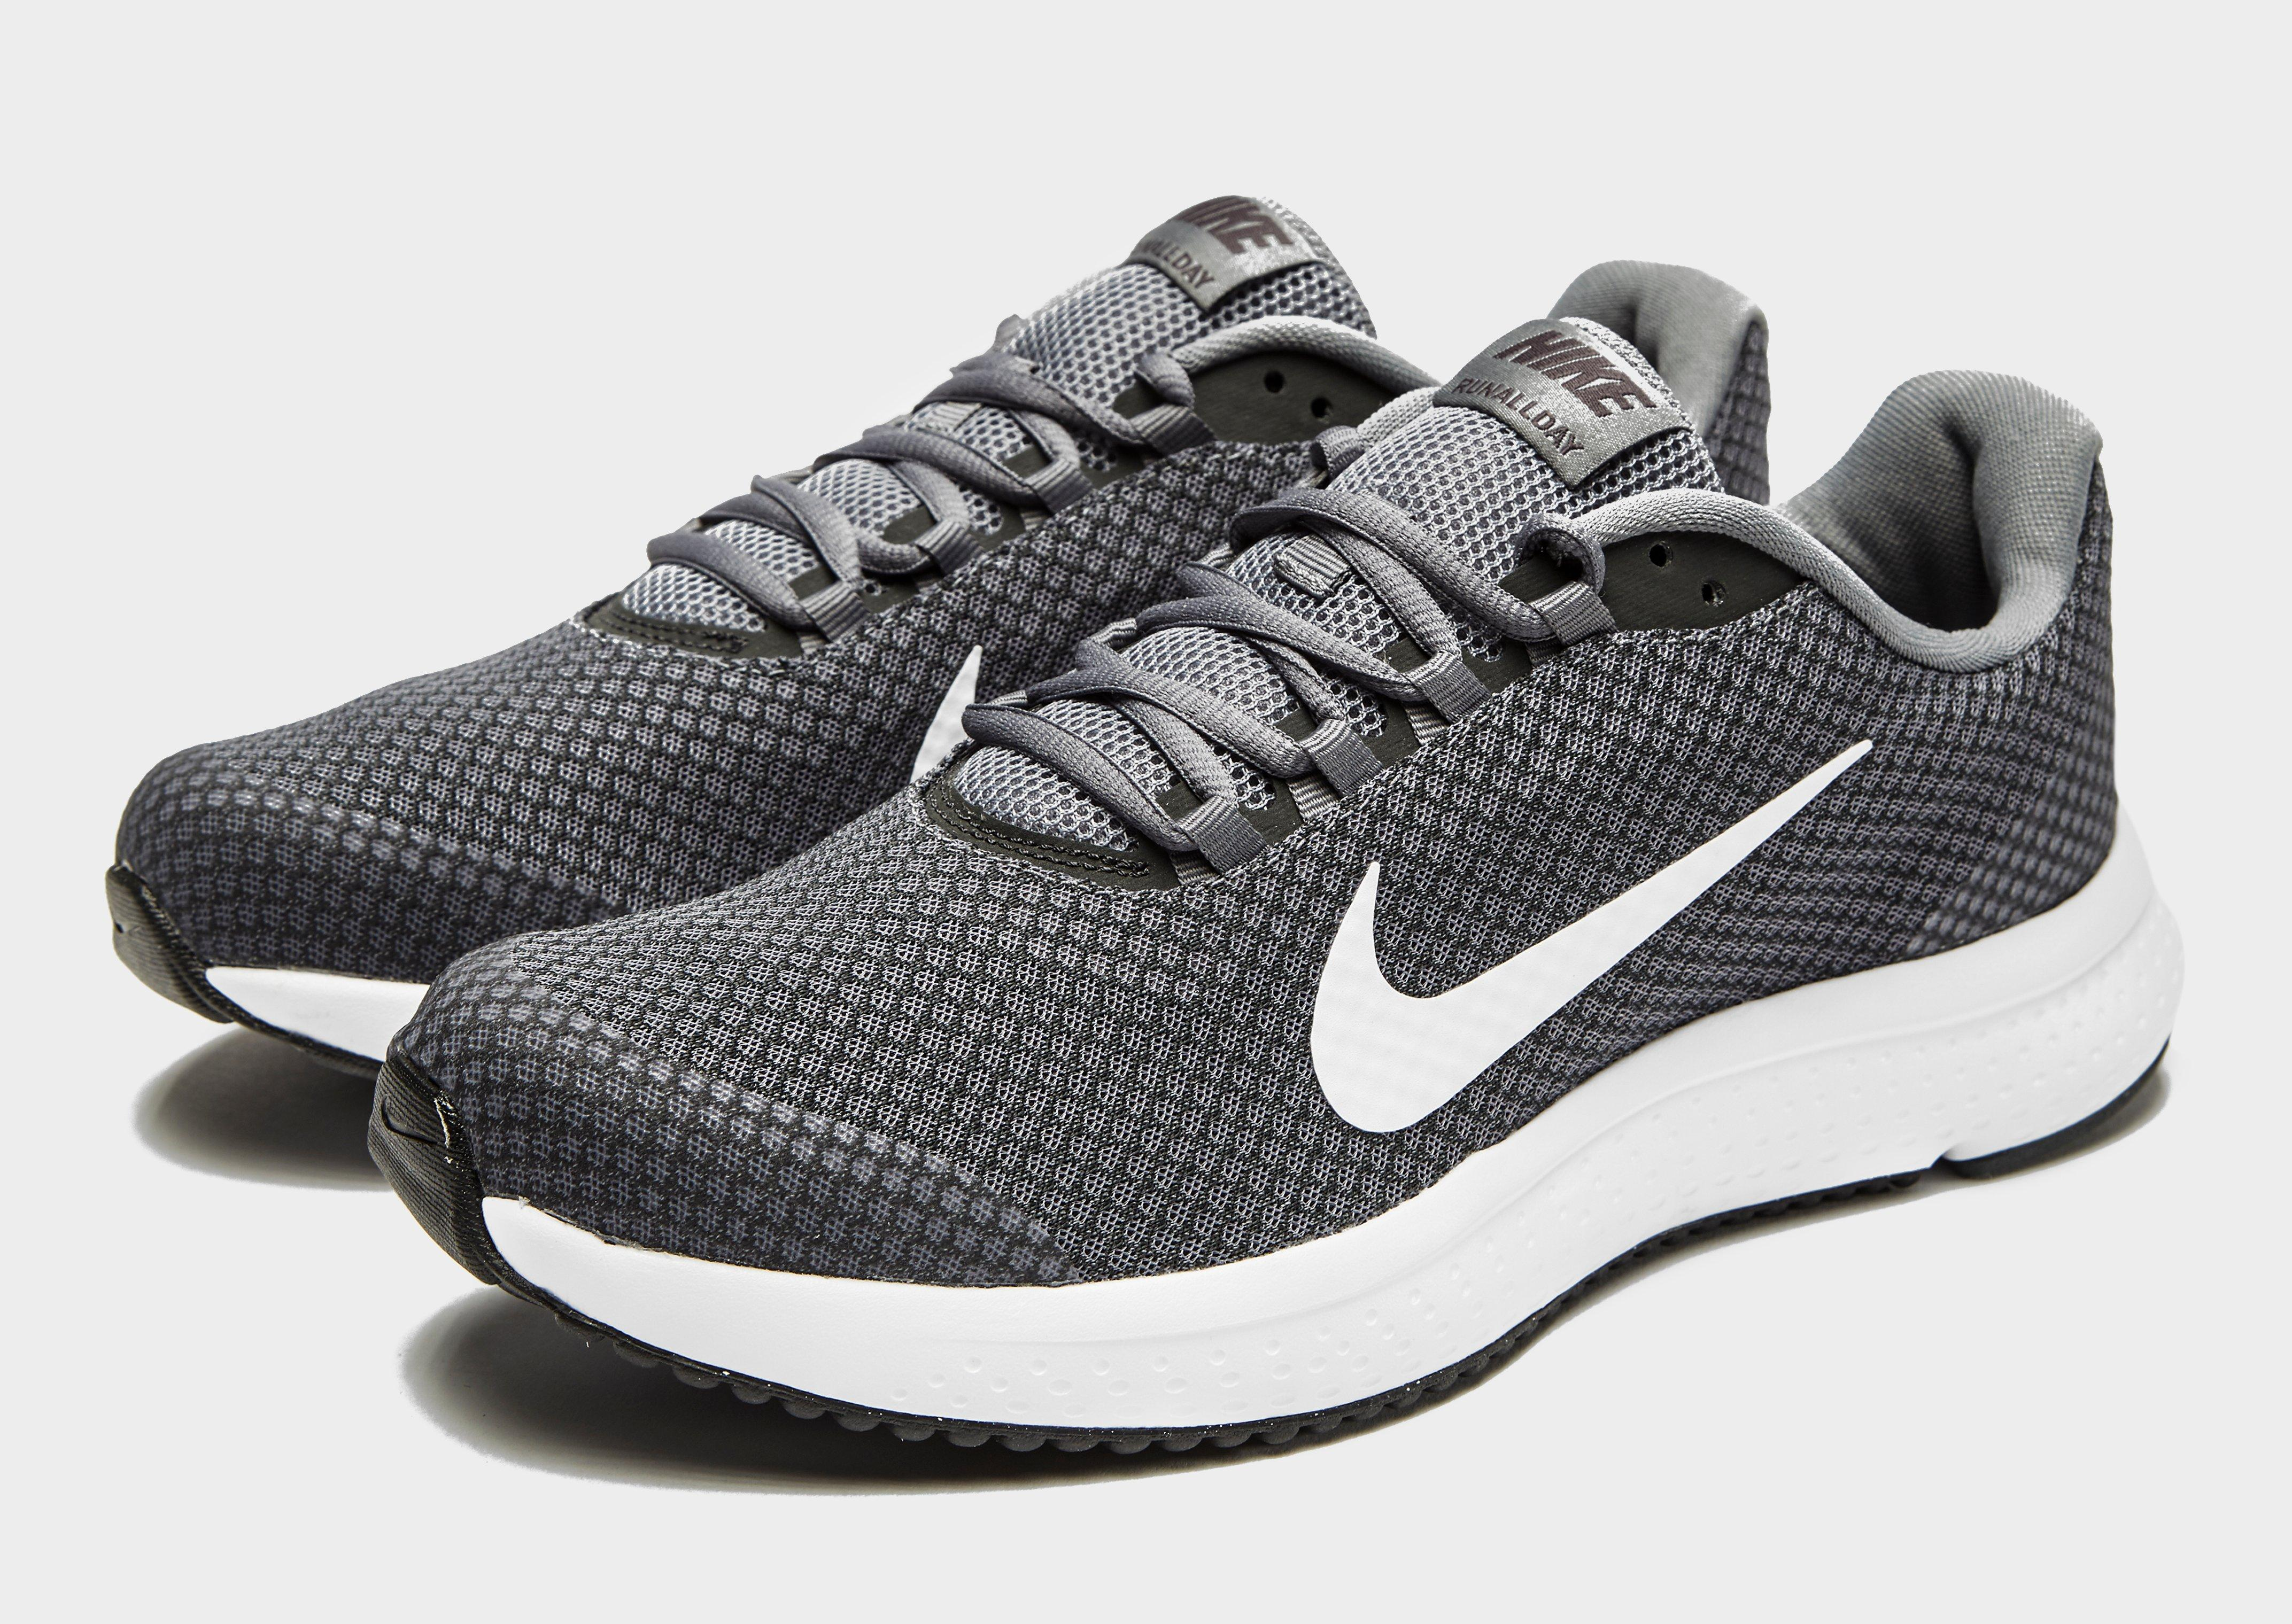 new styles 604ff 0afb0 For women and teenage girls, there are a wide variety of tennis shoes,  heels, and boots nike mercurial veloce iii to choose from. nike mercurial  wiki ...